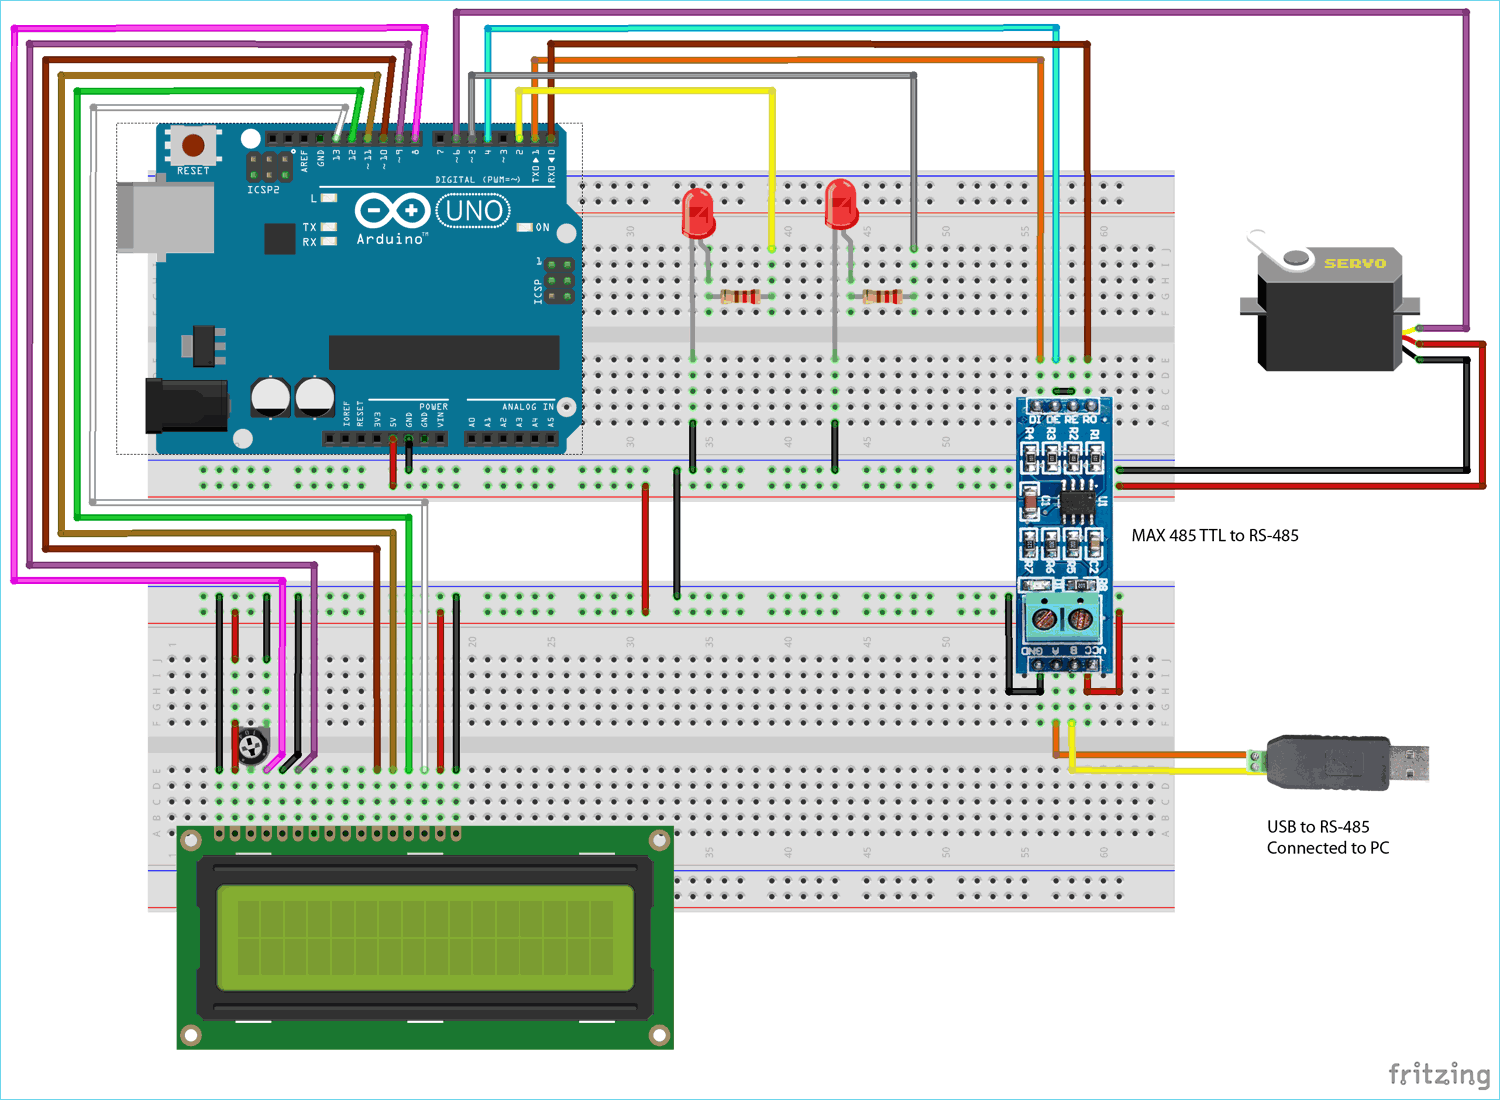 circuit diagram for rs 485 modbus serial communication using arduino wiring diagram for modbus rs485 wiring connection diagram modbus rs485 [ 1500 x 1100 Pixel ]